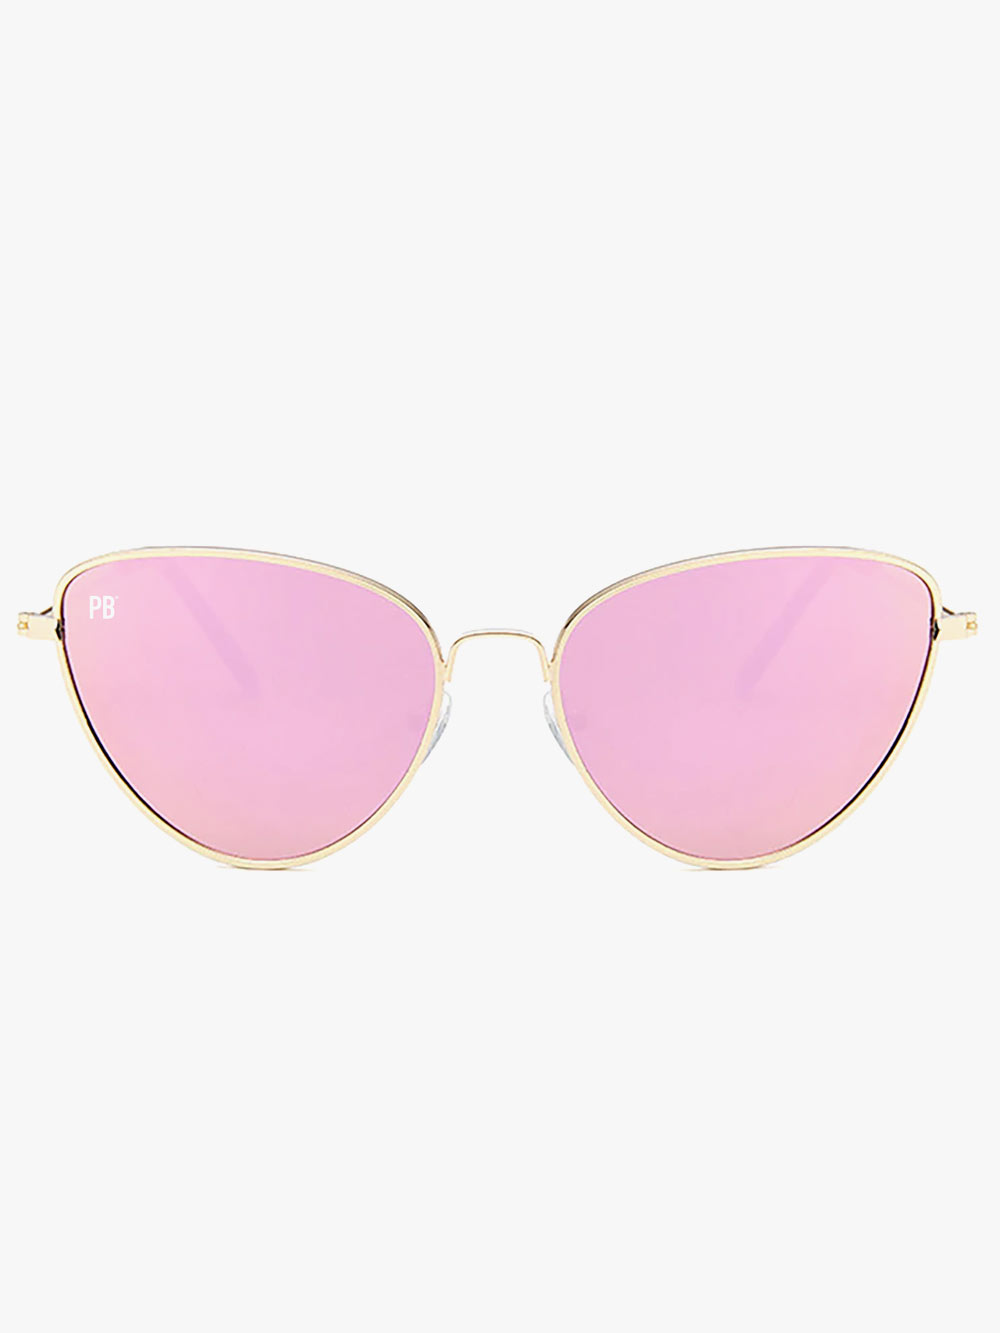 cate-eye-metal-gold-pink-2